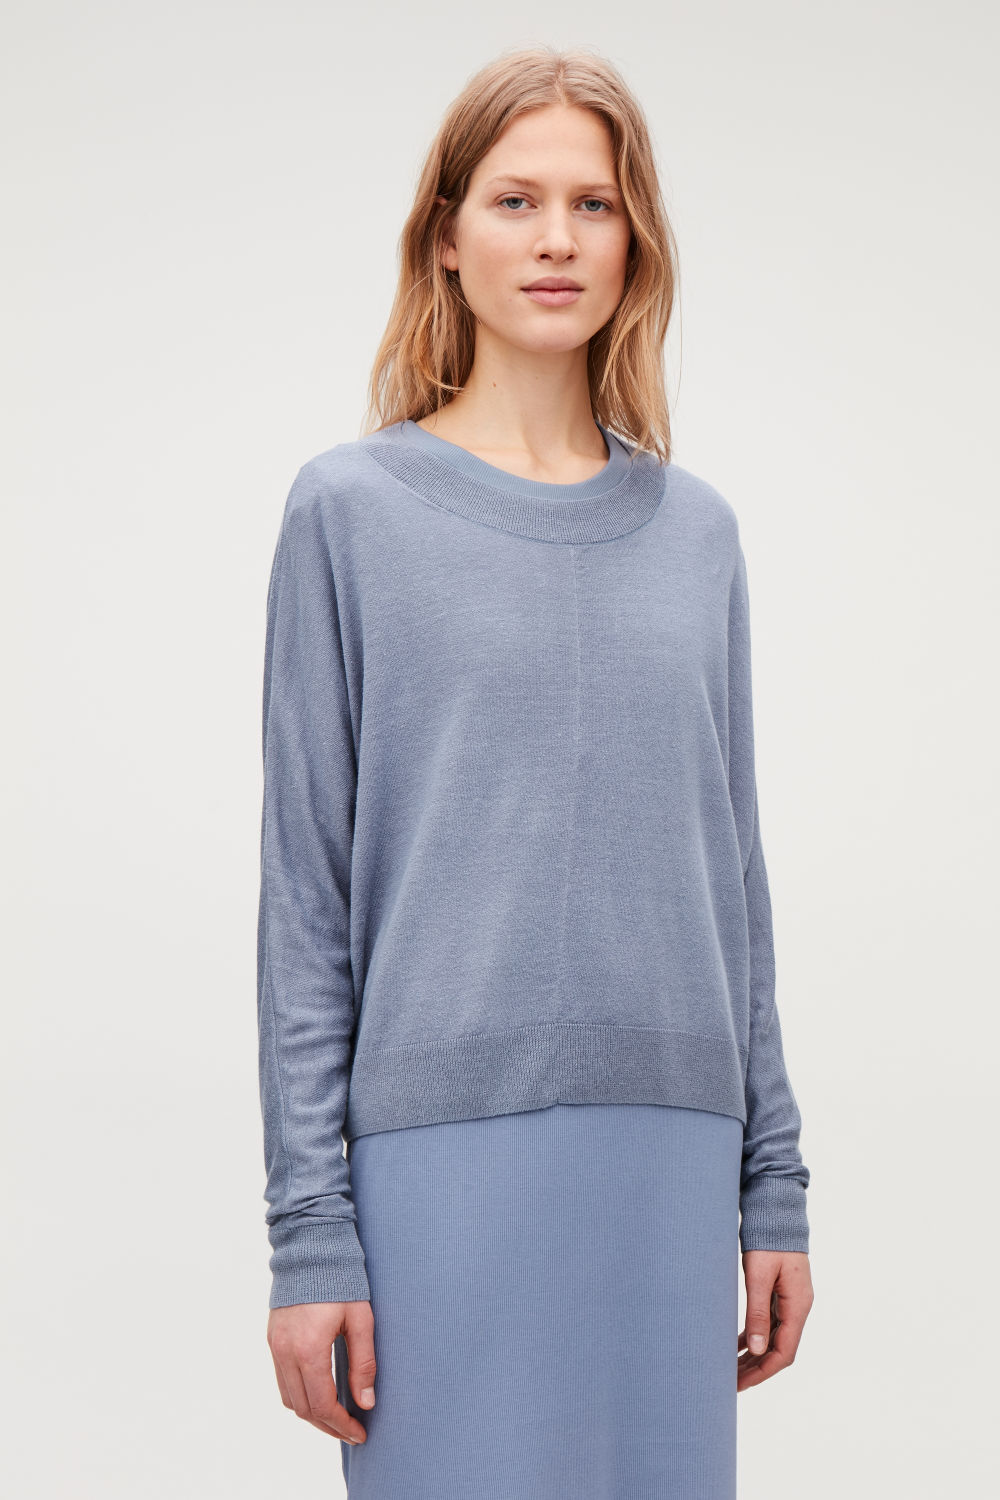 COS RELAXED LINEN-BLEND KNIT TOP,Stonewash blue